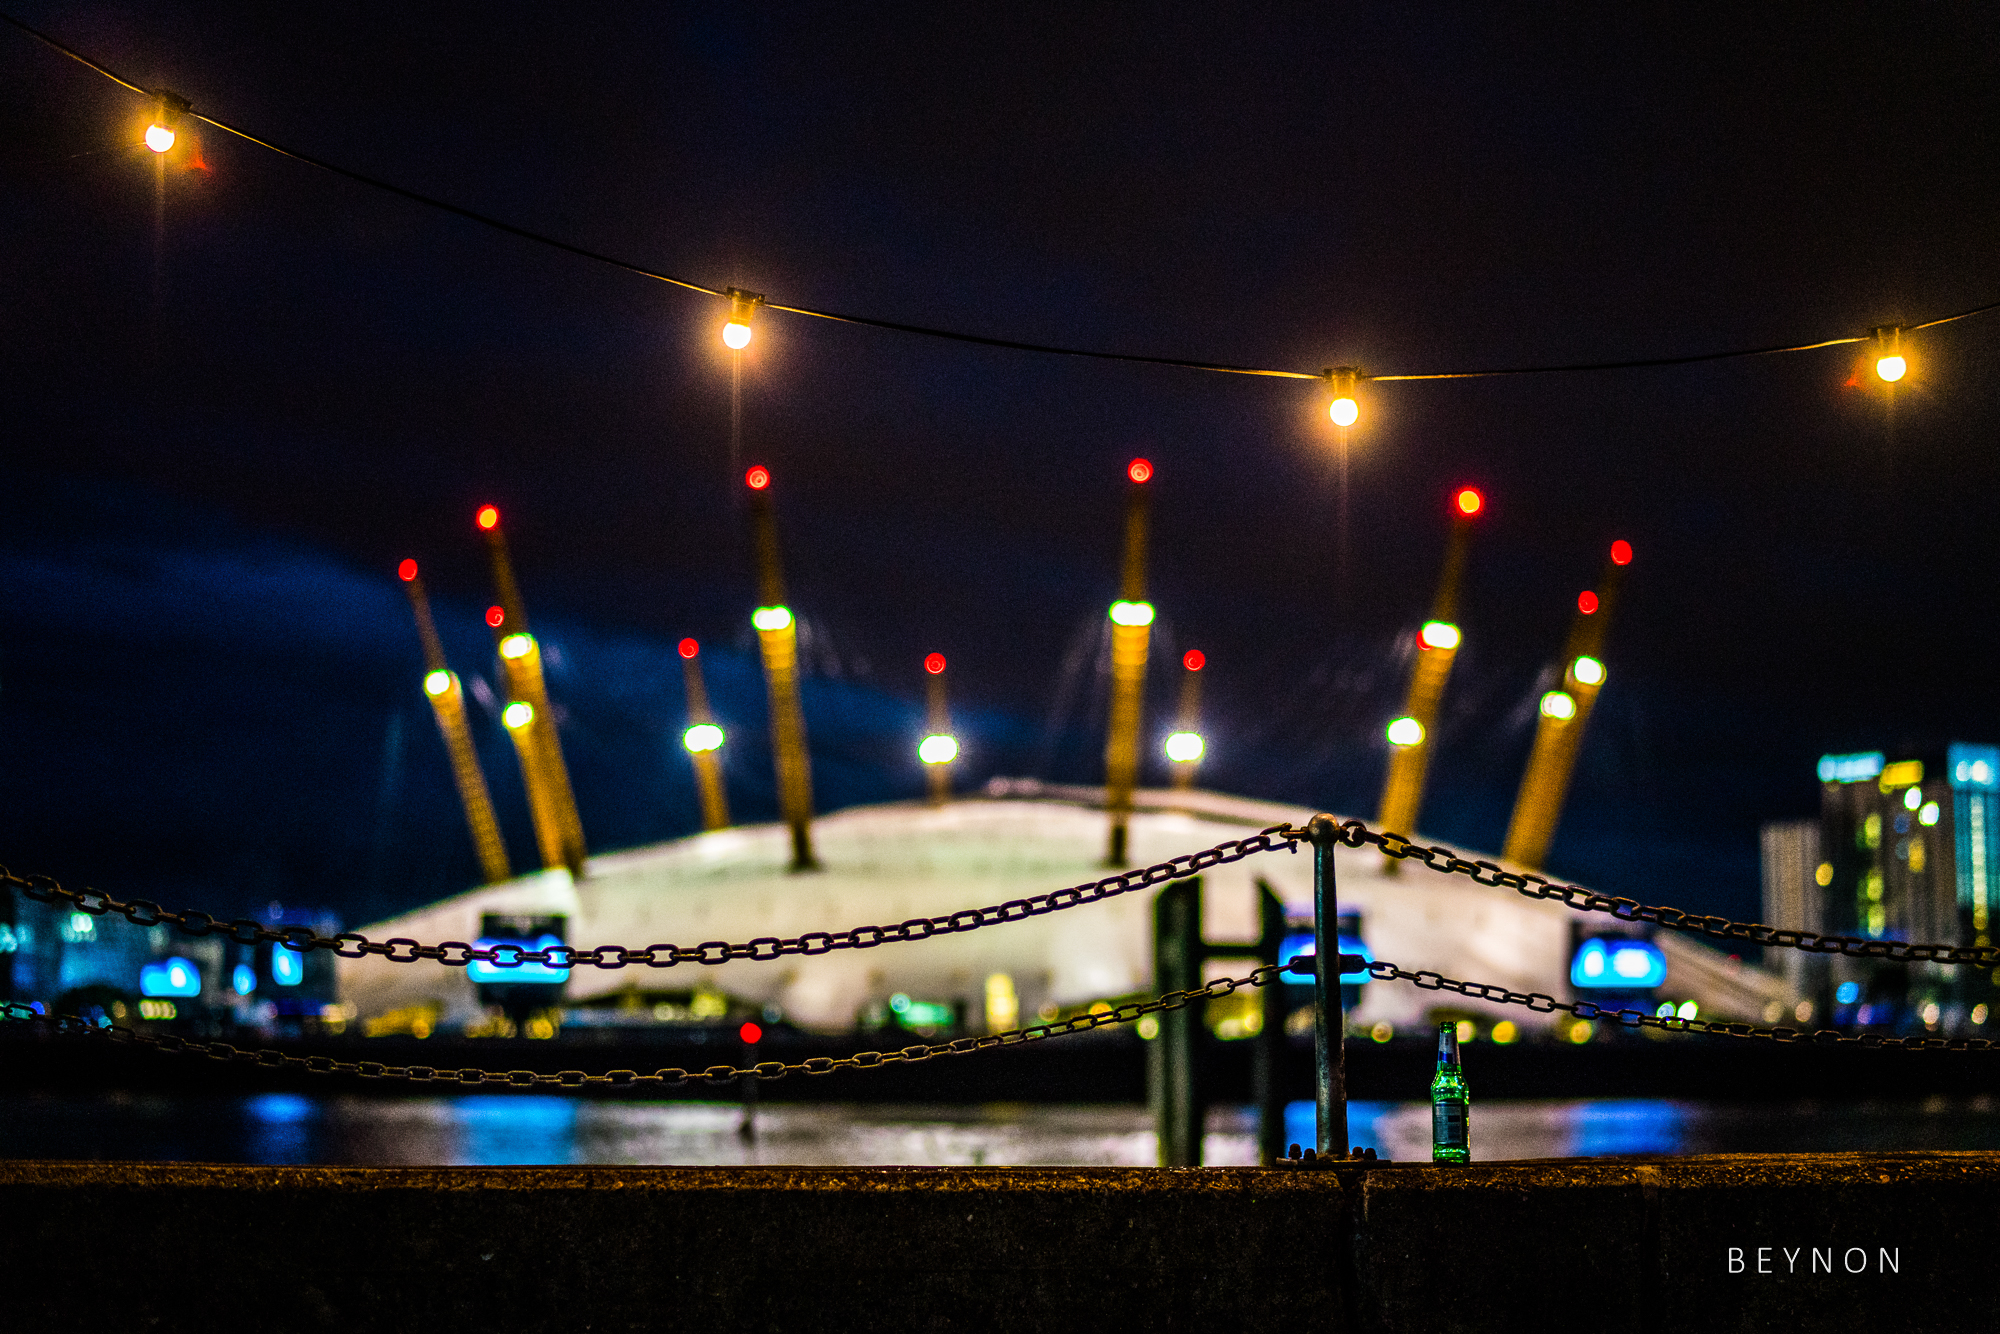 The O2 lit up by lights